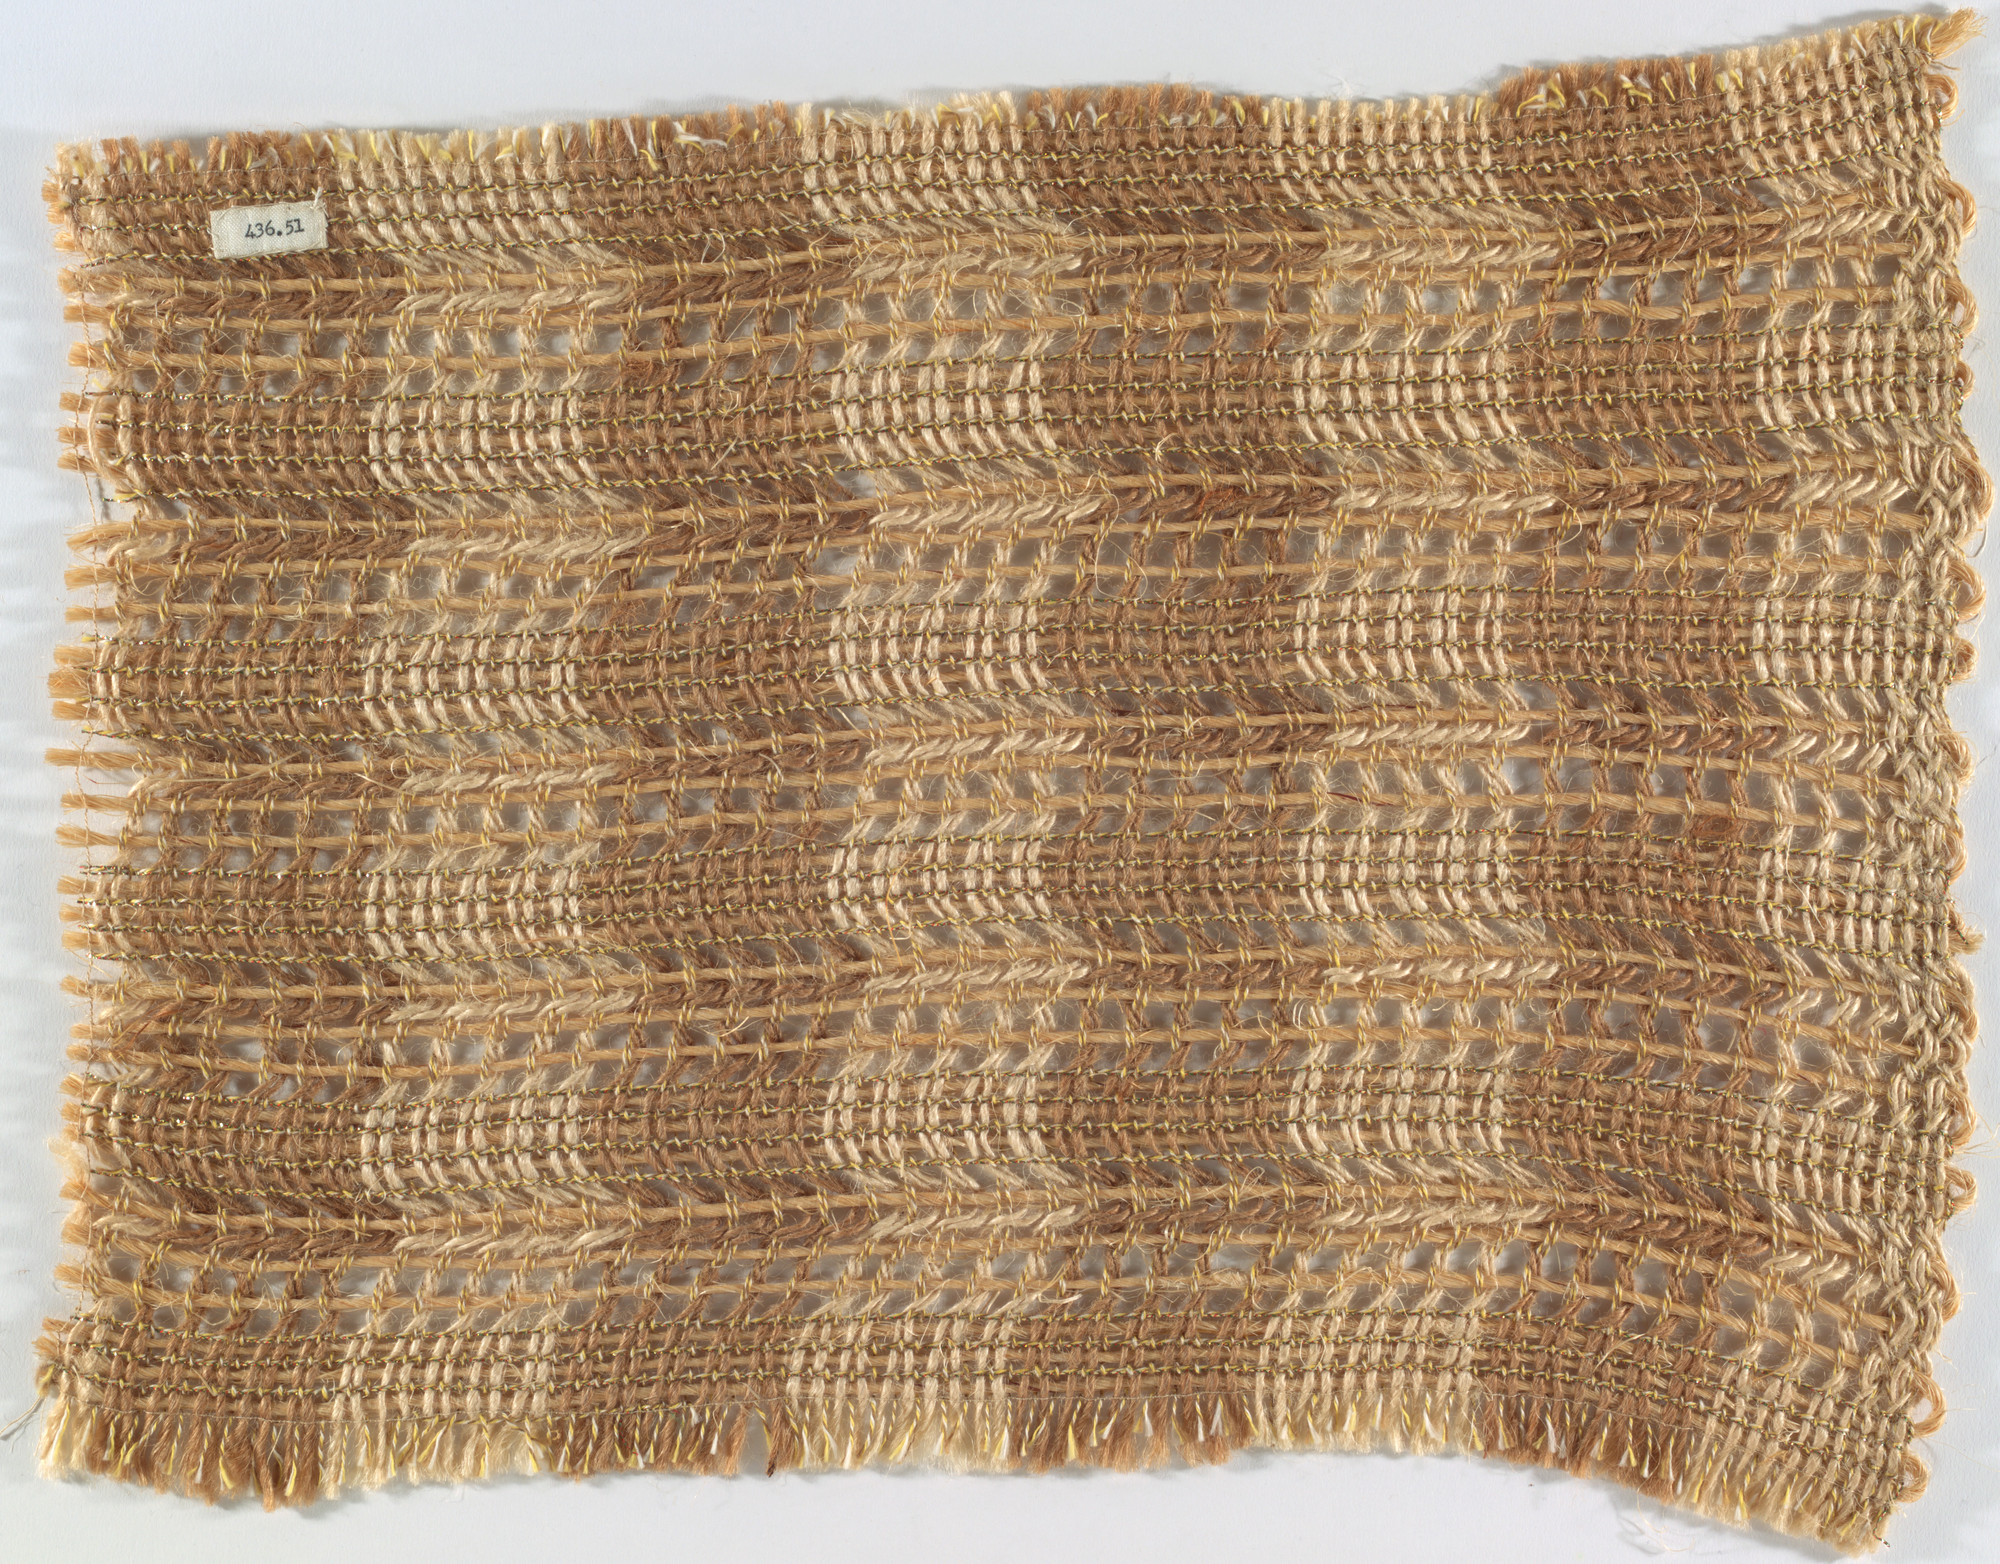 Anni Albers. Room-Divider Fabric Sample. 1949